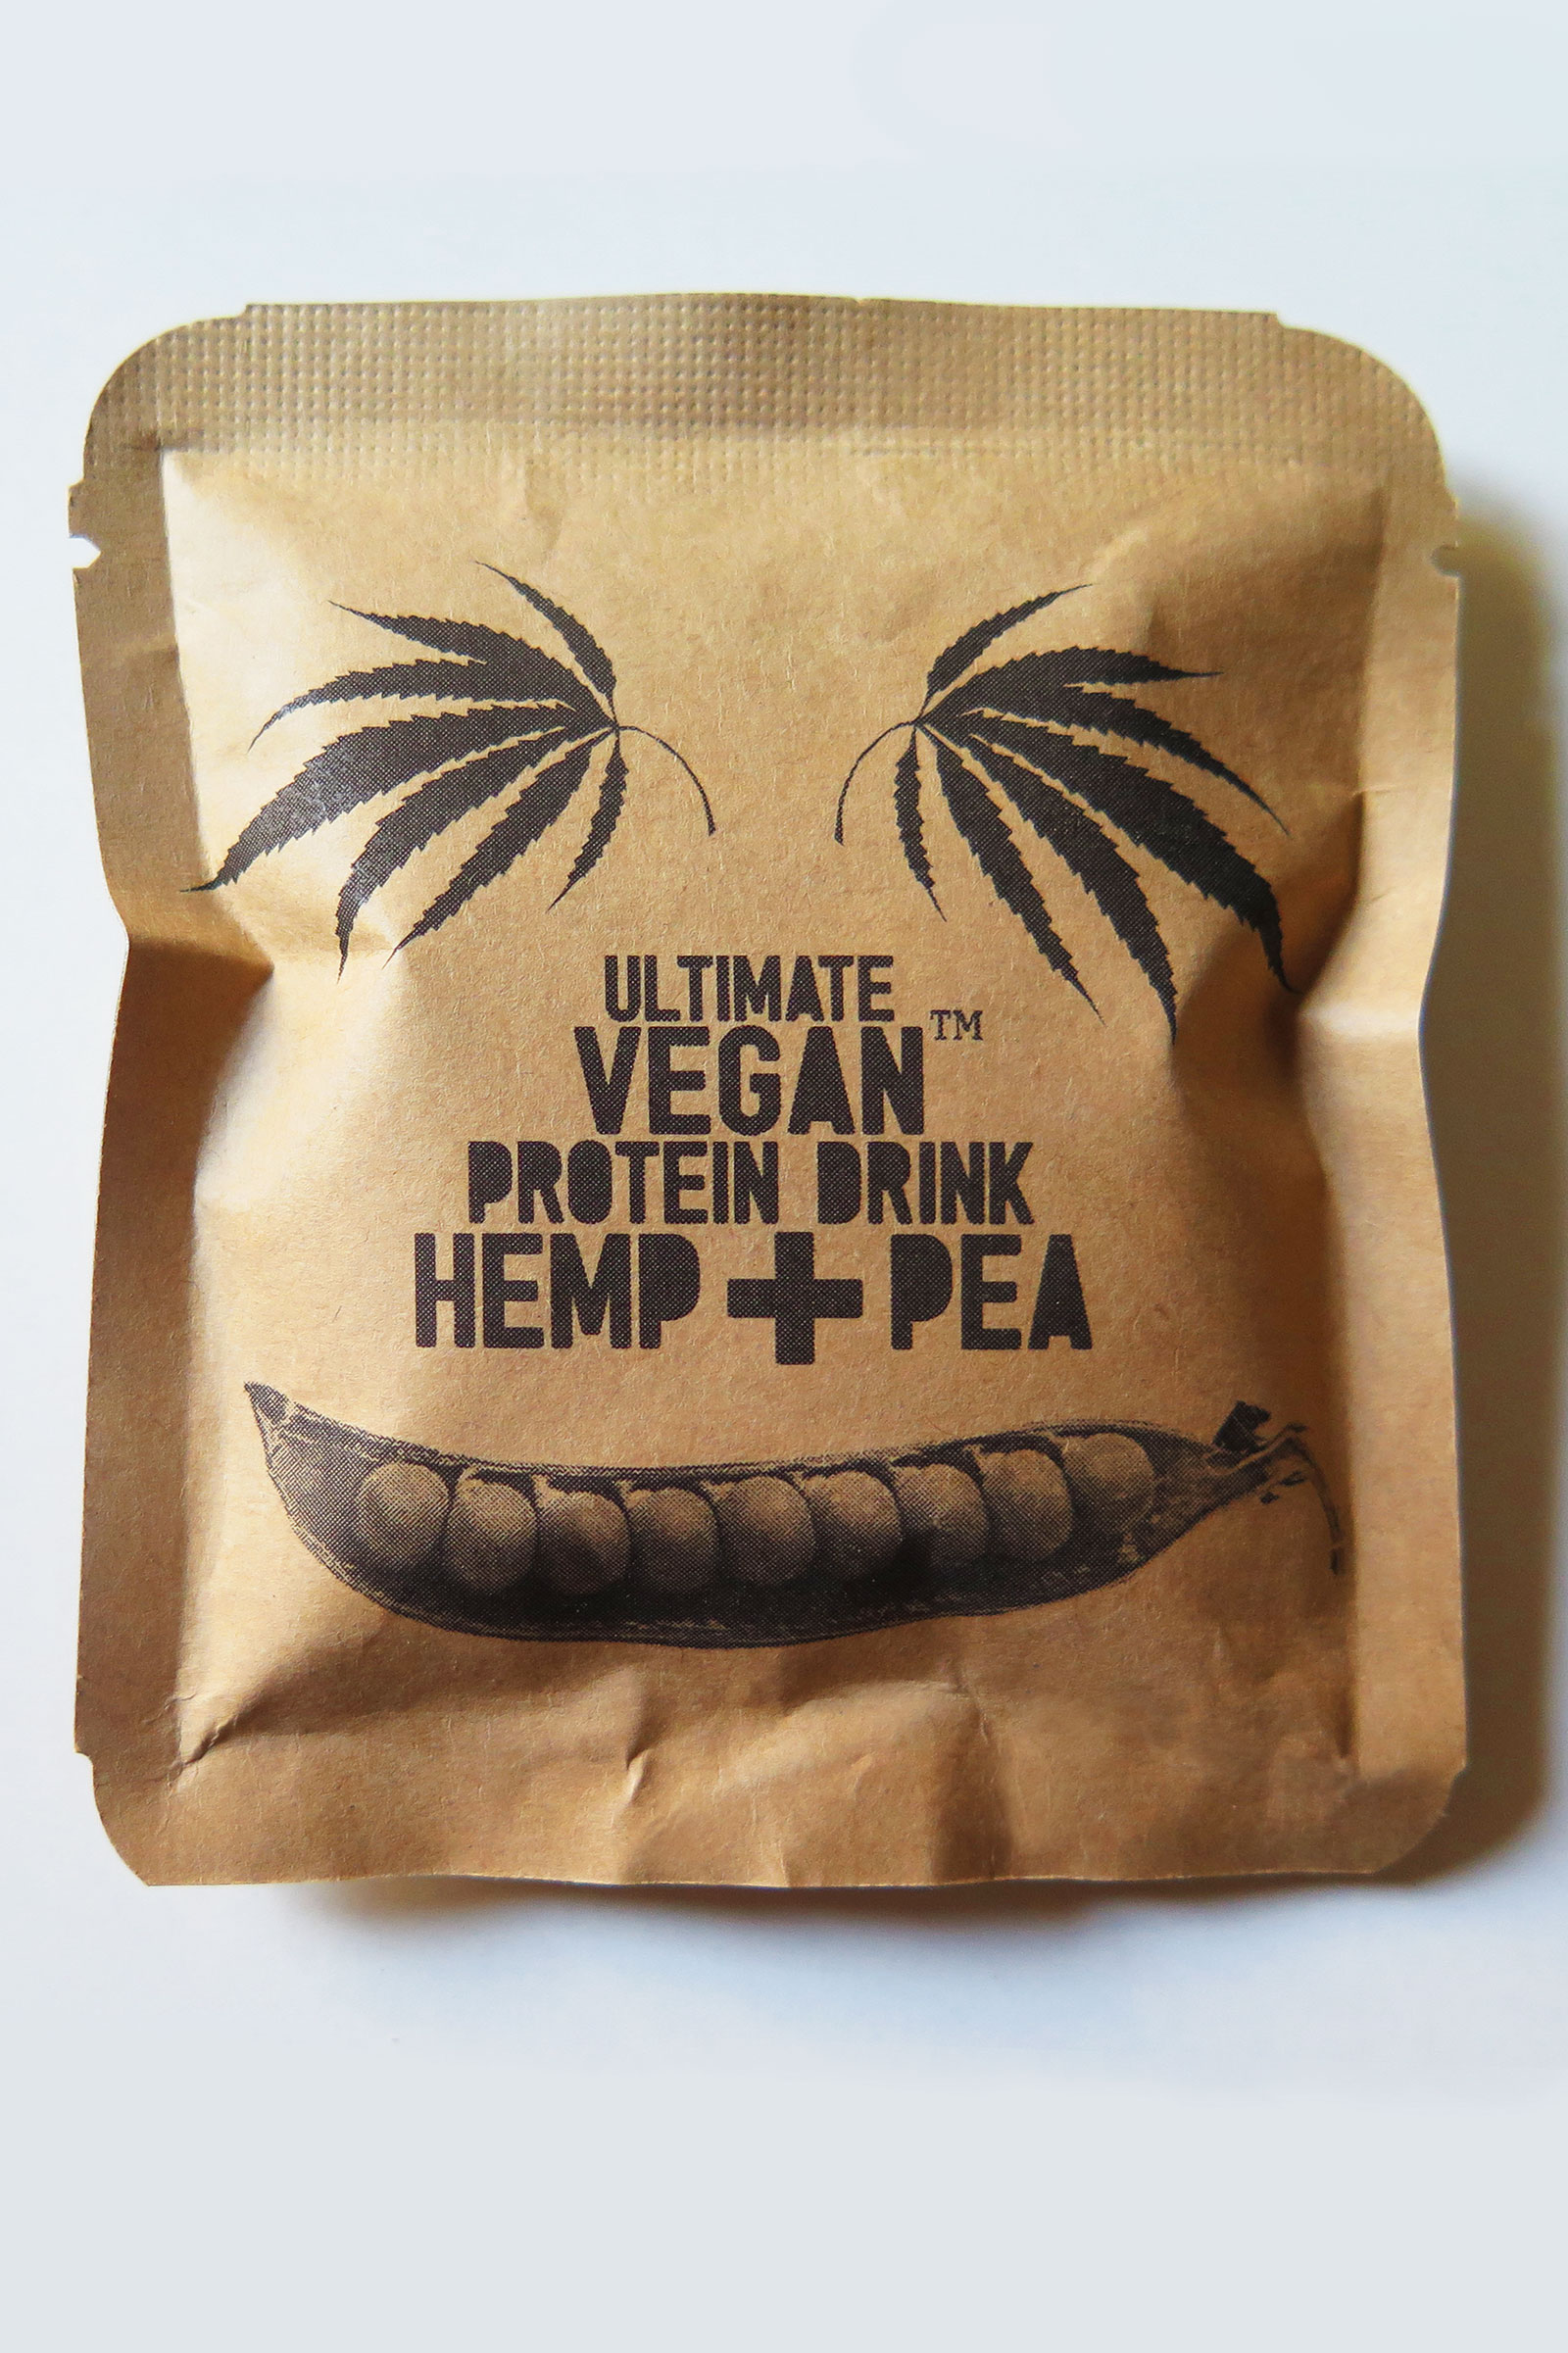 ULTIMATE VEGAN Protein Drink Hemp+Pea Choco / ULTIMATE VEGAN Proteínový Nápoj Hemp+Pea Choco